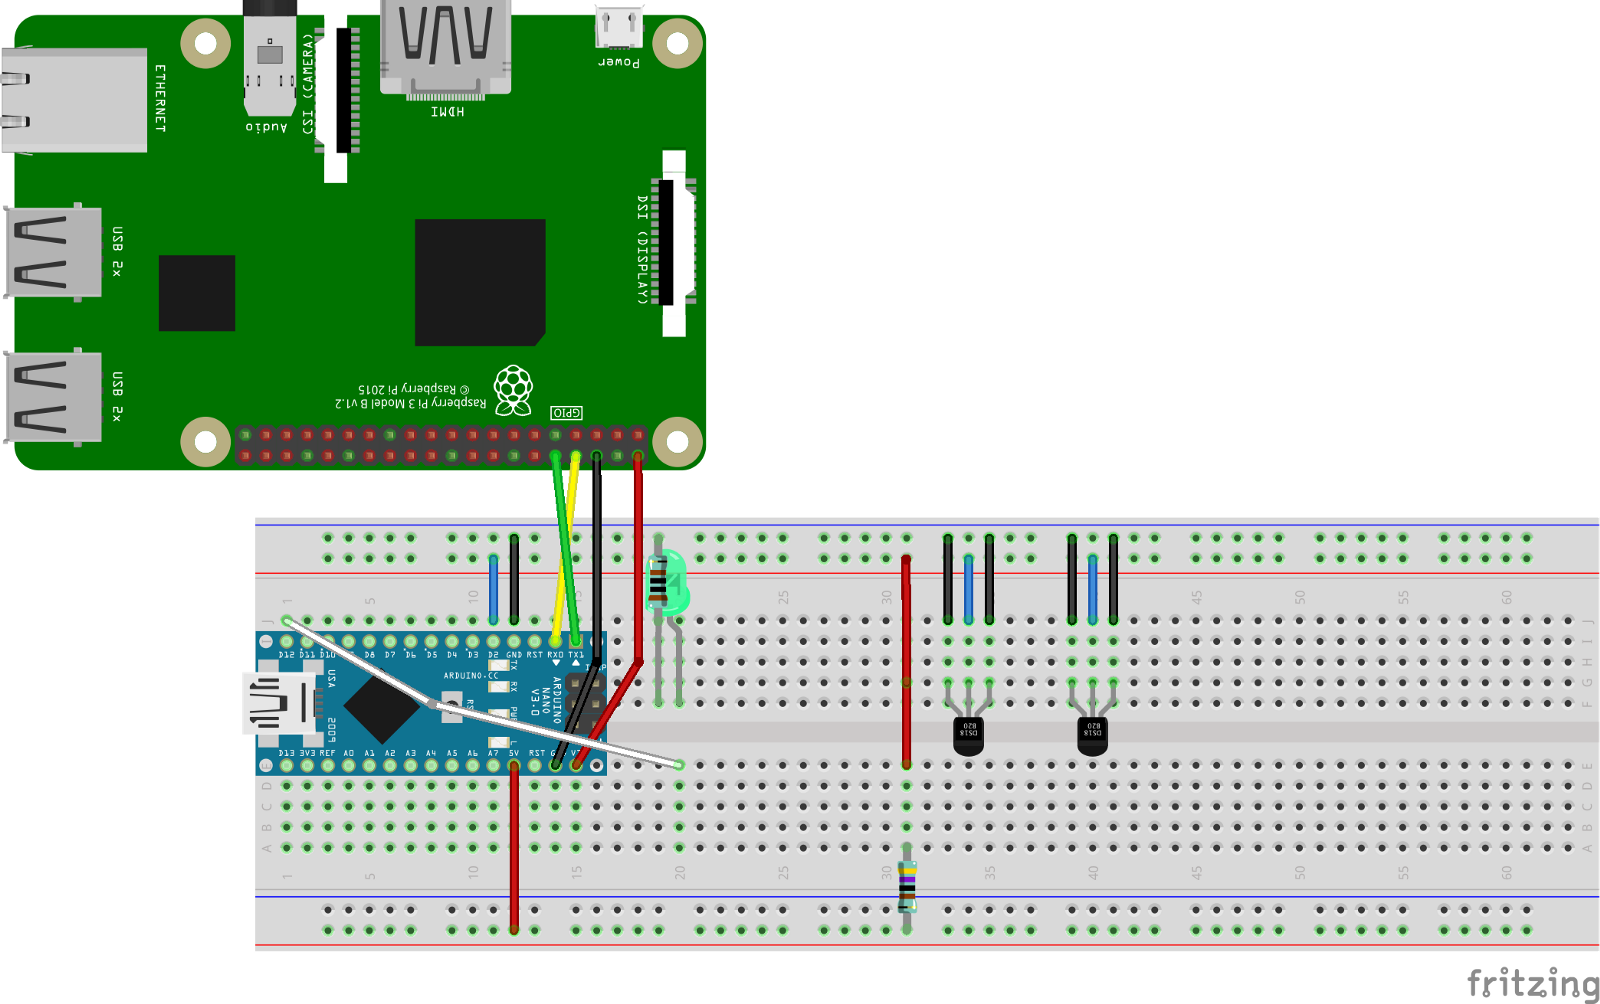 Recording Remote Temperatures With Androidthings Arduino And Firebase Download Image 5vdc Power Supply Circuit Diagram Of Pc Android The Nano Is Being Powered By Raspberry Pi It Has Its Tx Rx Connected To Pins In Addition Pis 5v